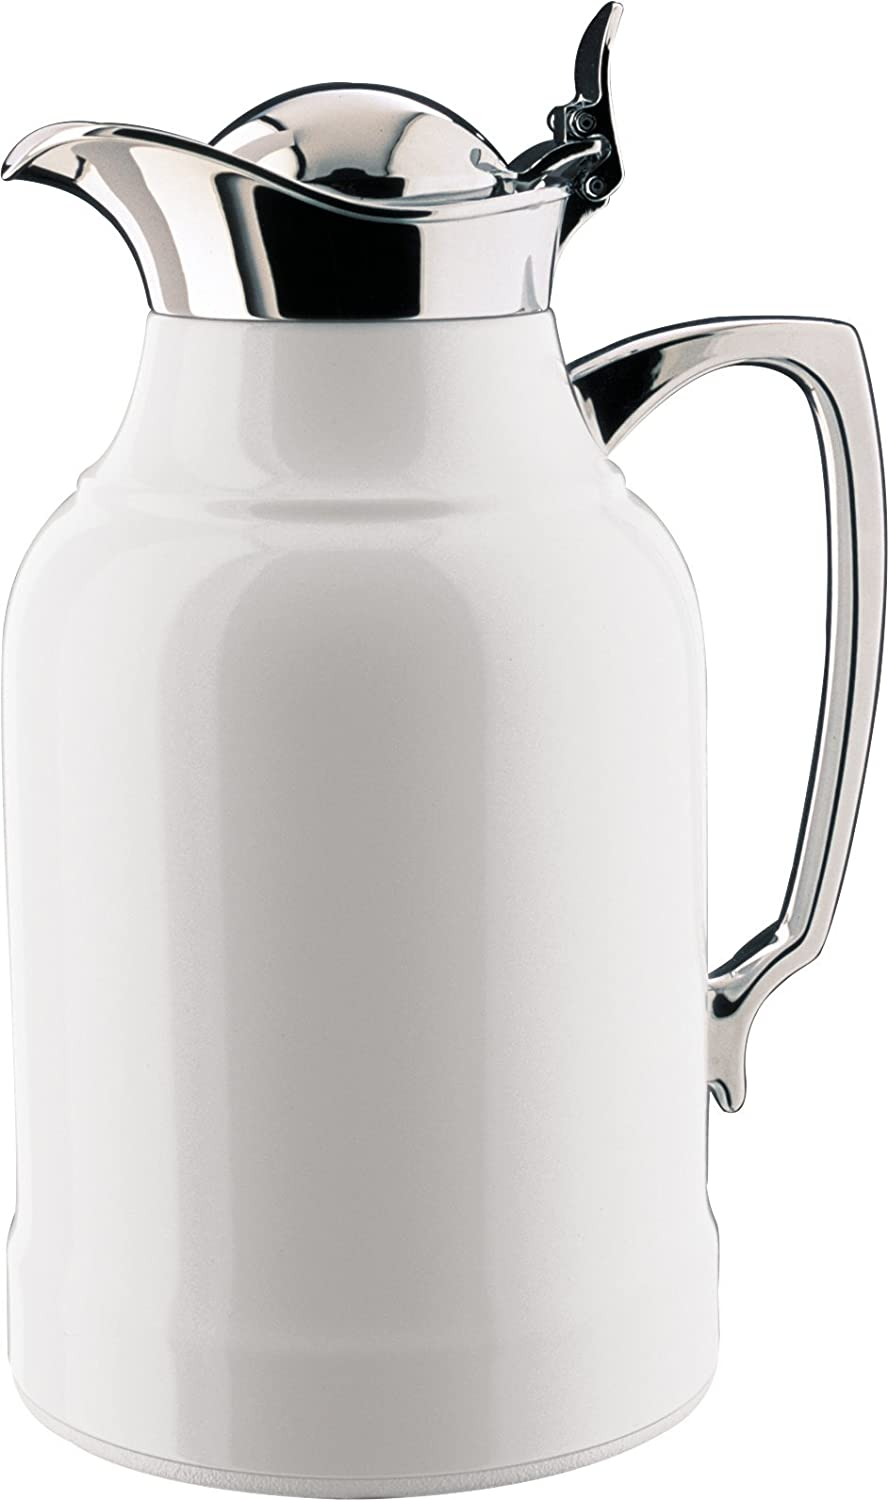 alfi Opal Glass Vacuum Lacquered Chrome Plated Brass Thermal Carafe for Hot and Cold Beverages, 1.0 L, White 61tZYjUzY0L